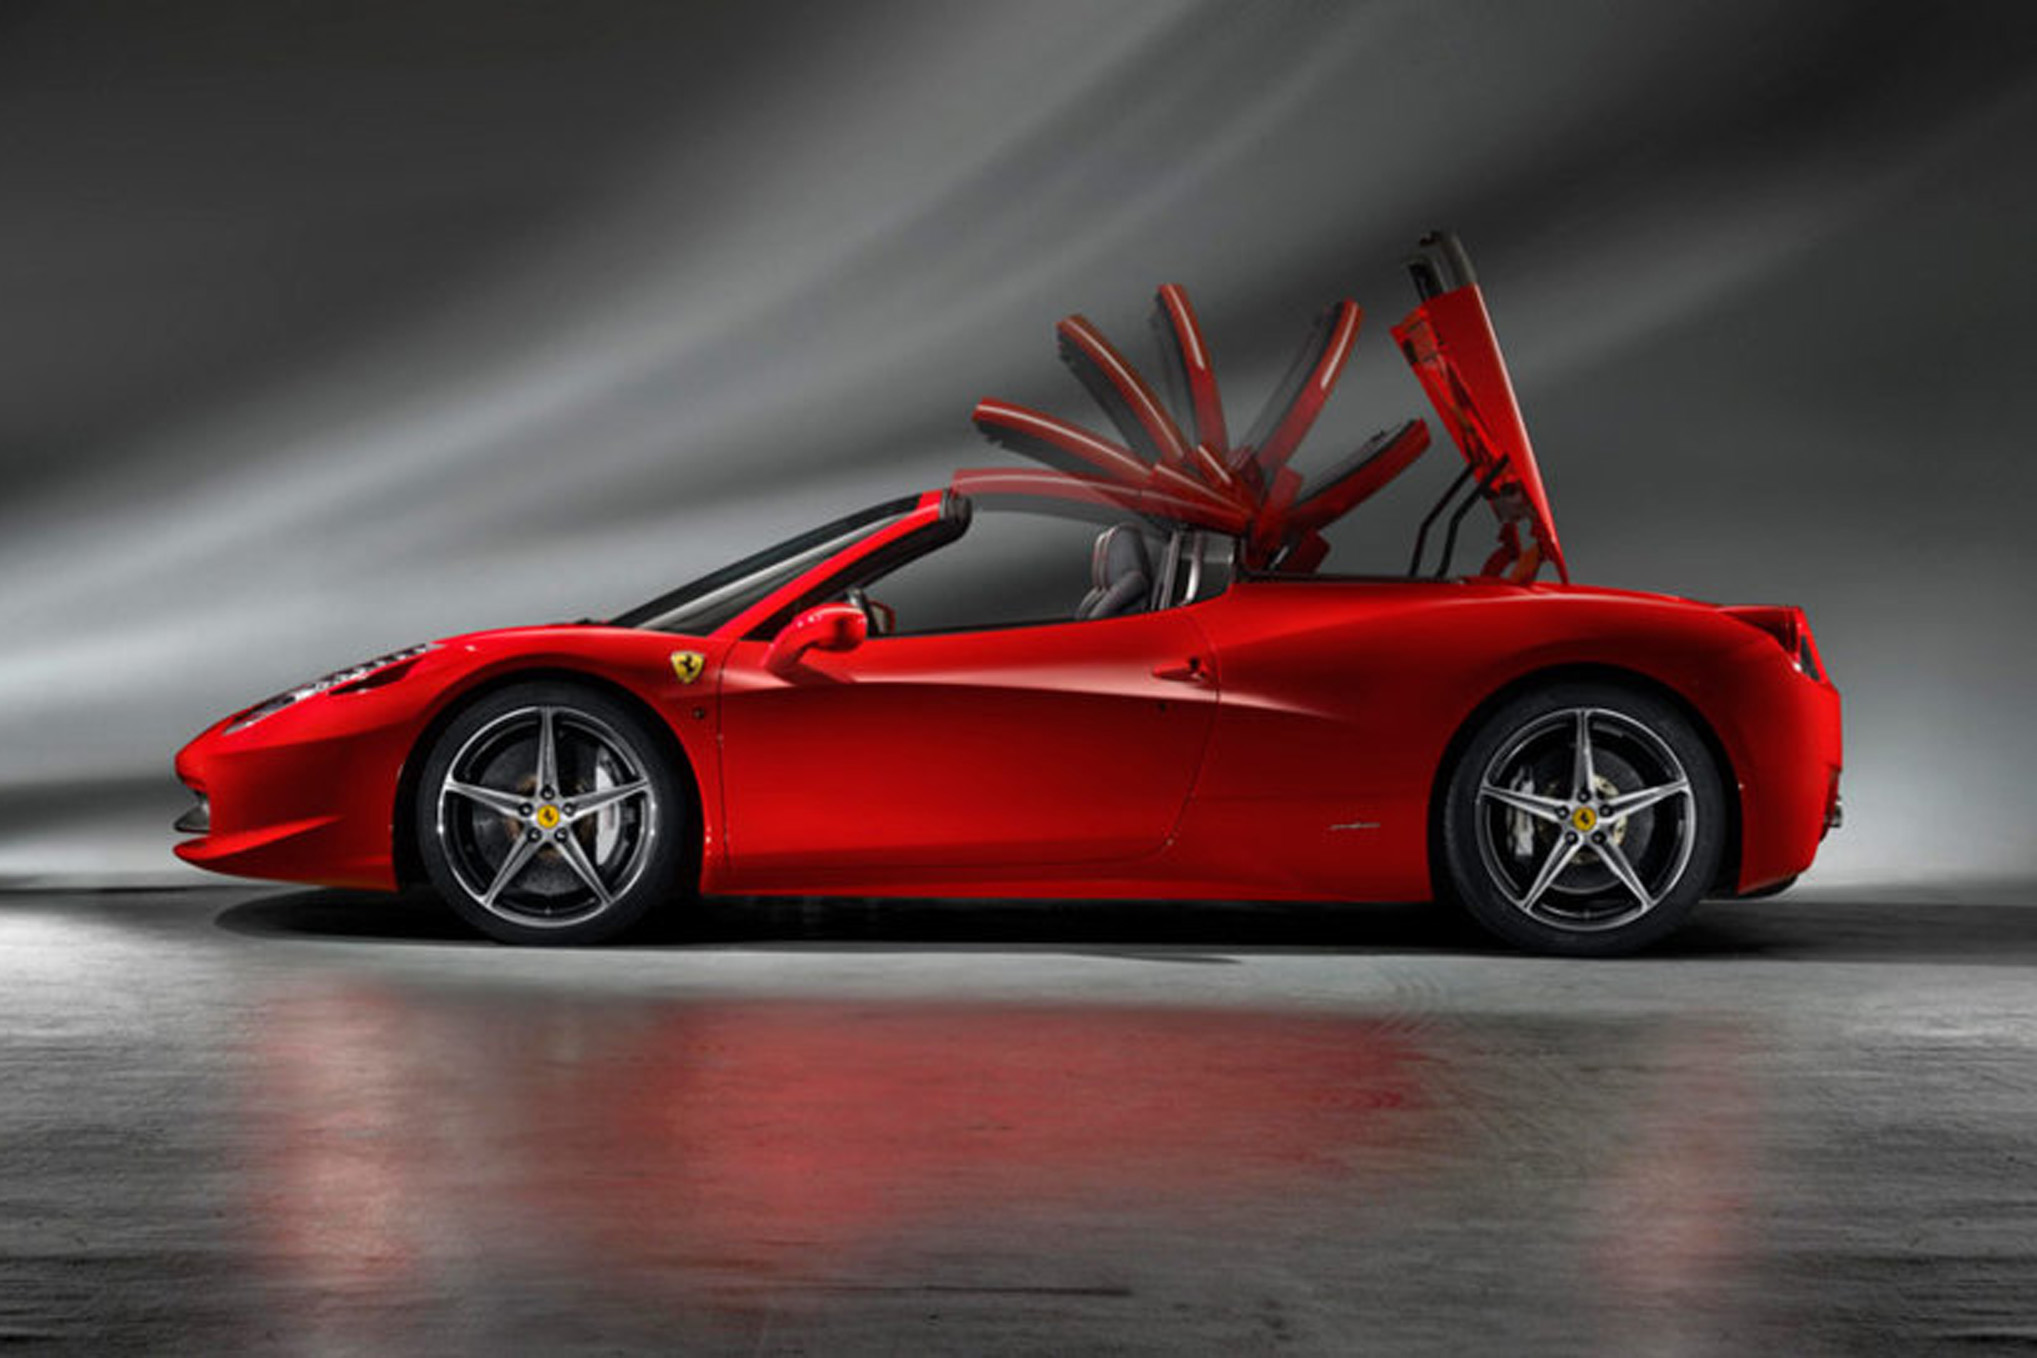 New Ferrari 458 Spider Cars Prices Overview